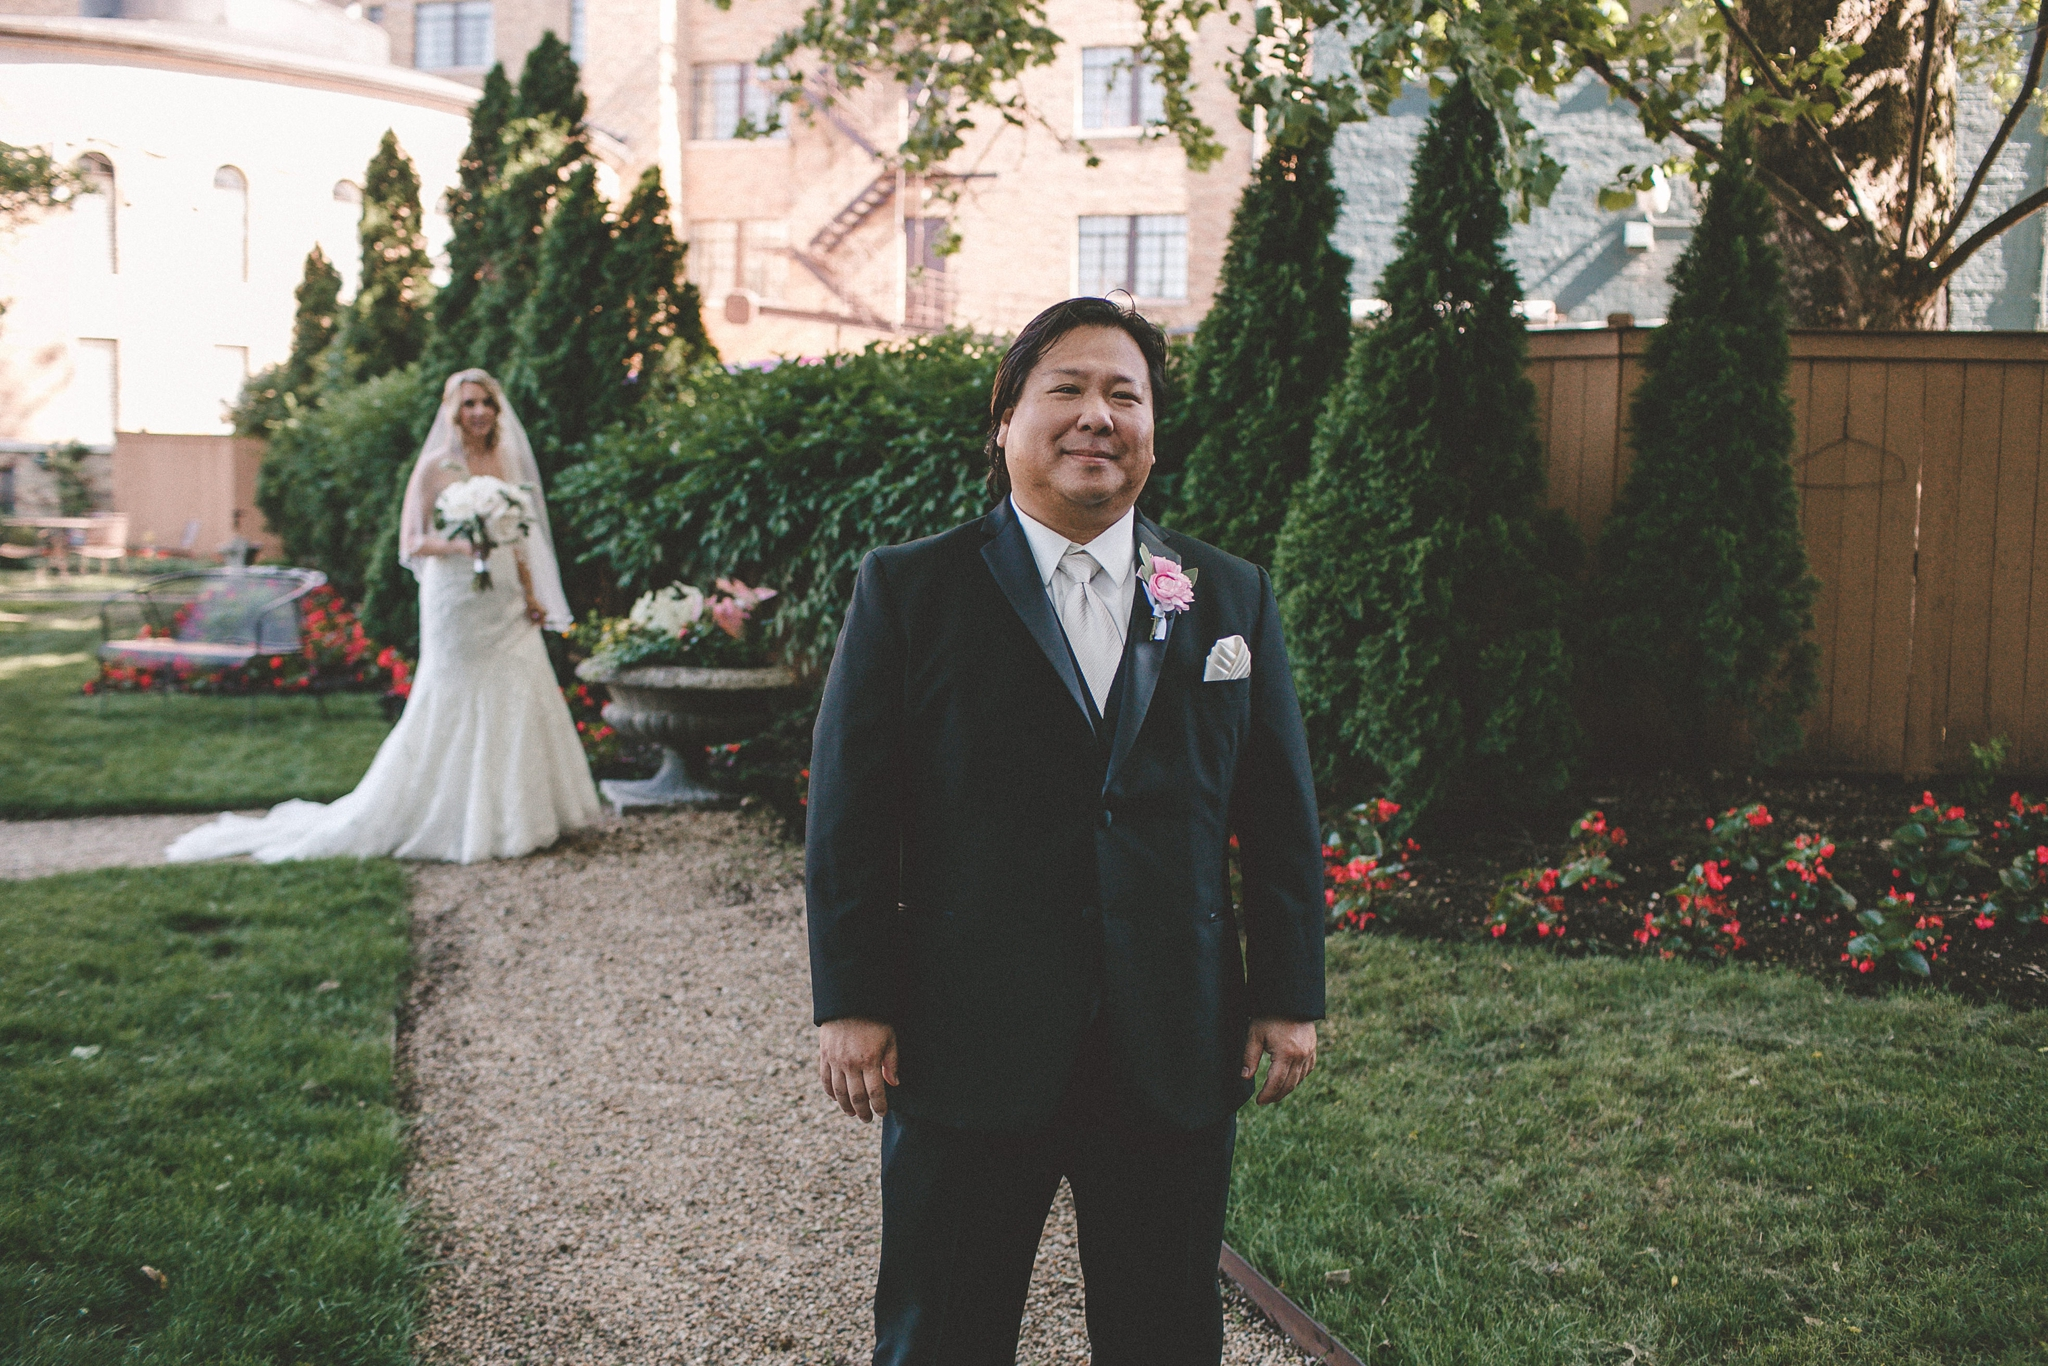 hotel_baker_st_charles_IL_wedding_photographer_0014.jpg